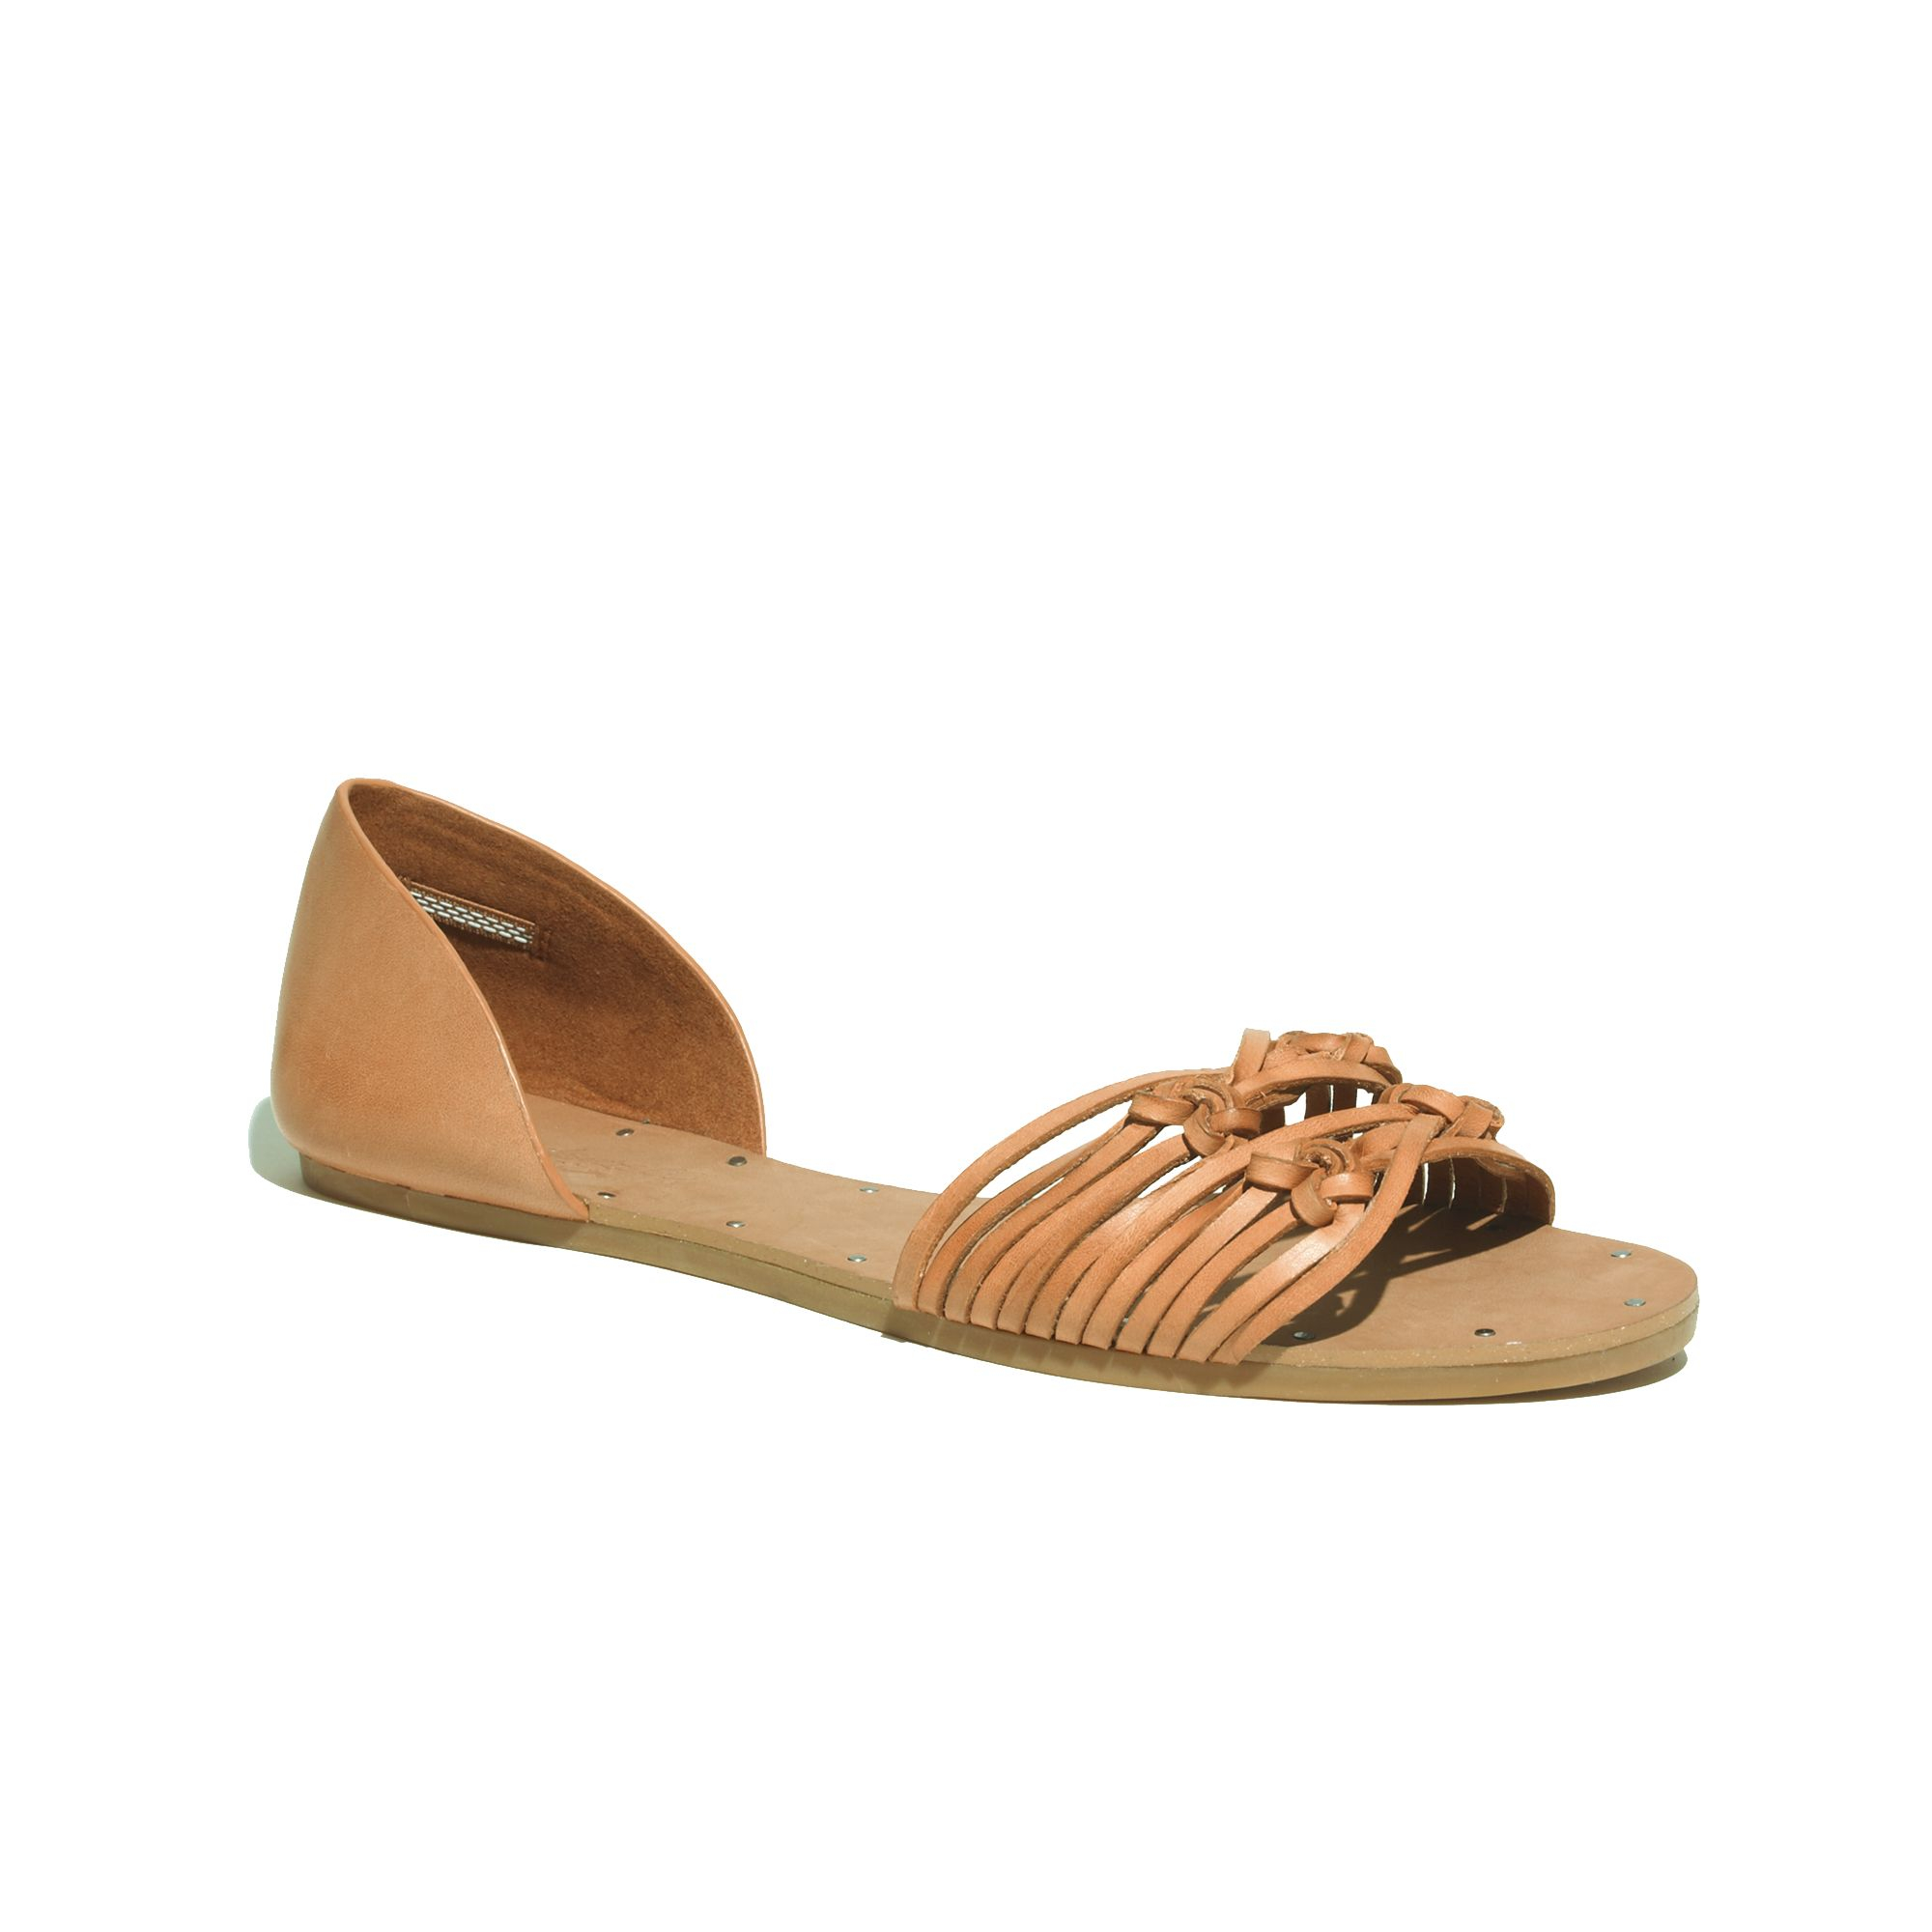 34c36b75d5188e Lyst - Madewell The Knotted Thea Sandal in Pink